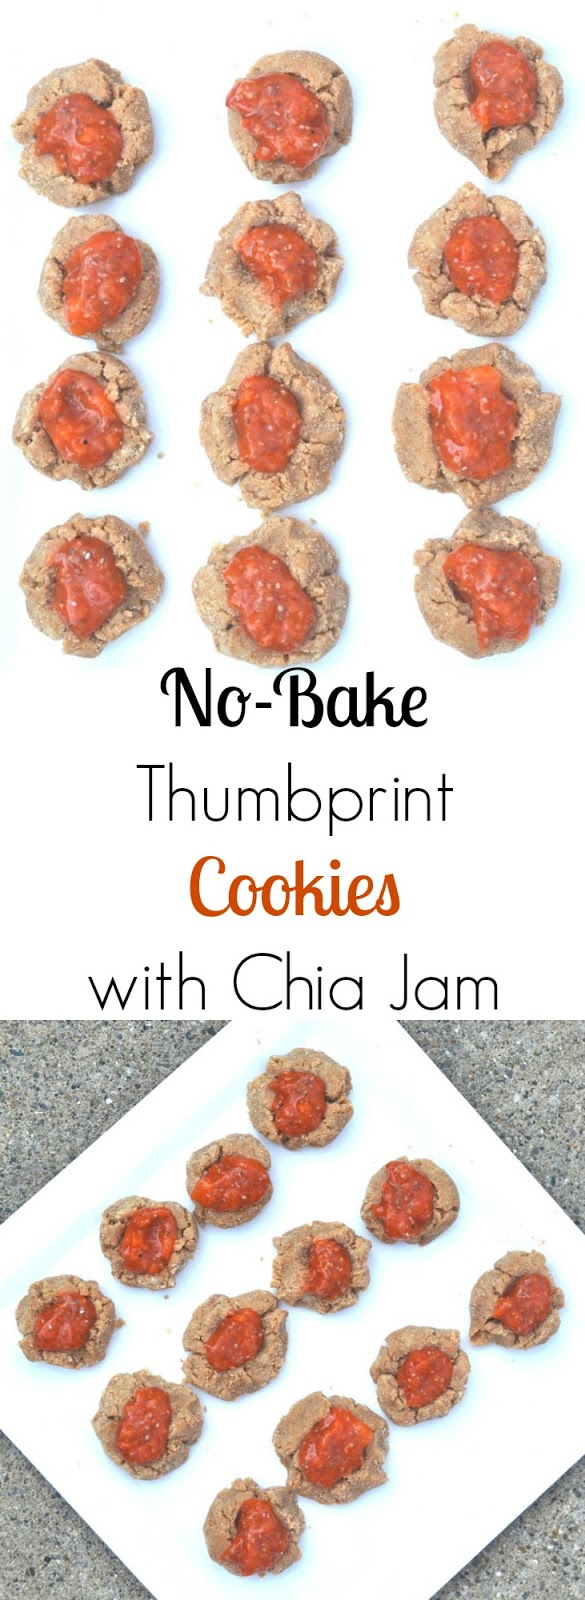 No-Bake Thumbprint Cookies with Chia Jam